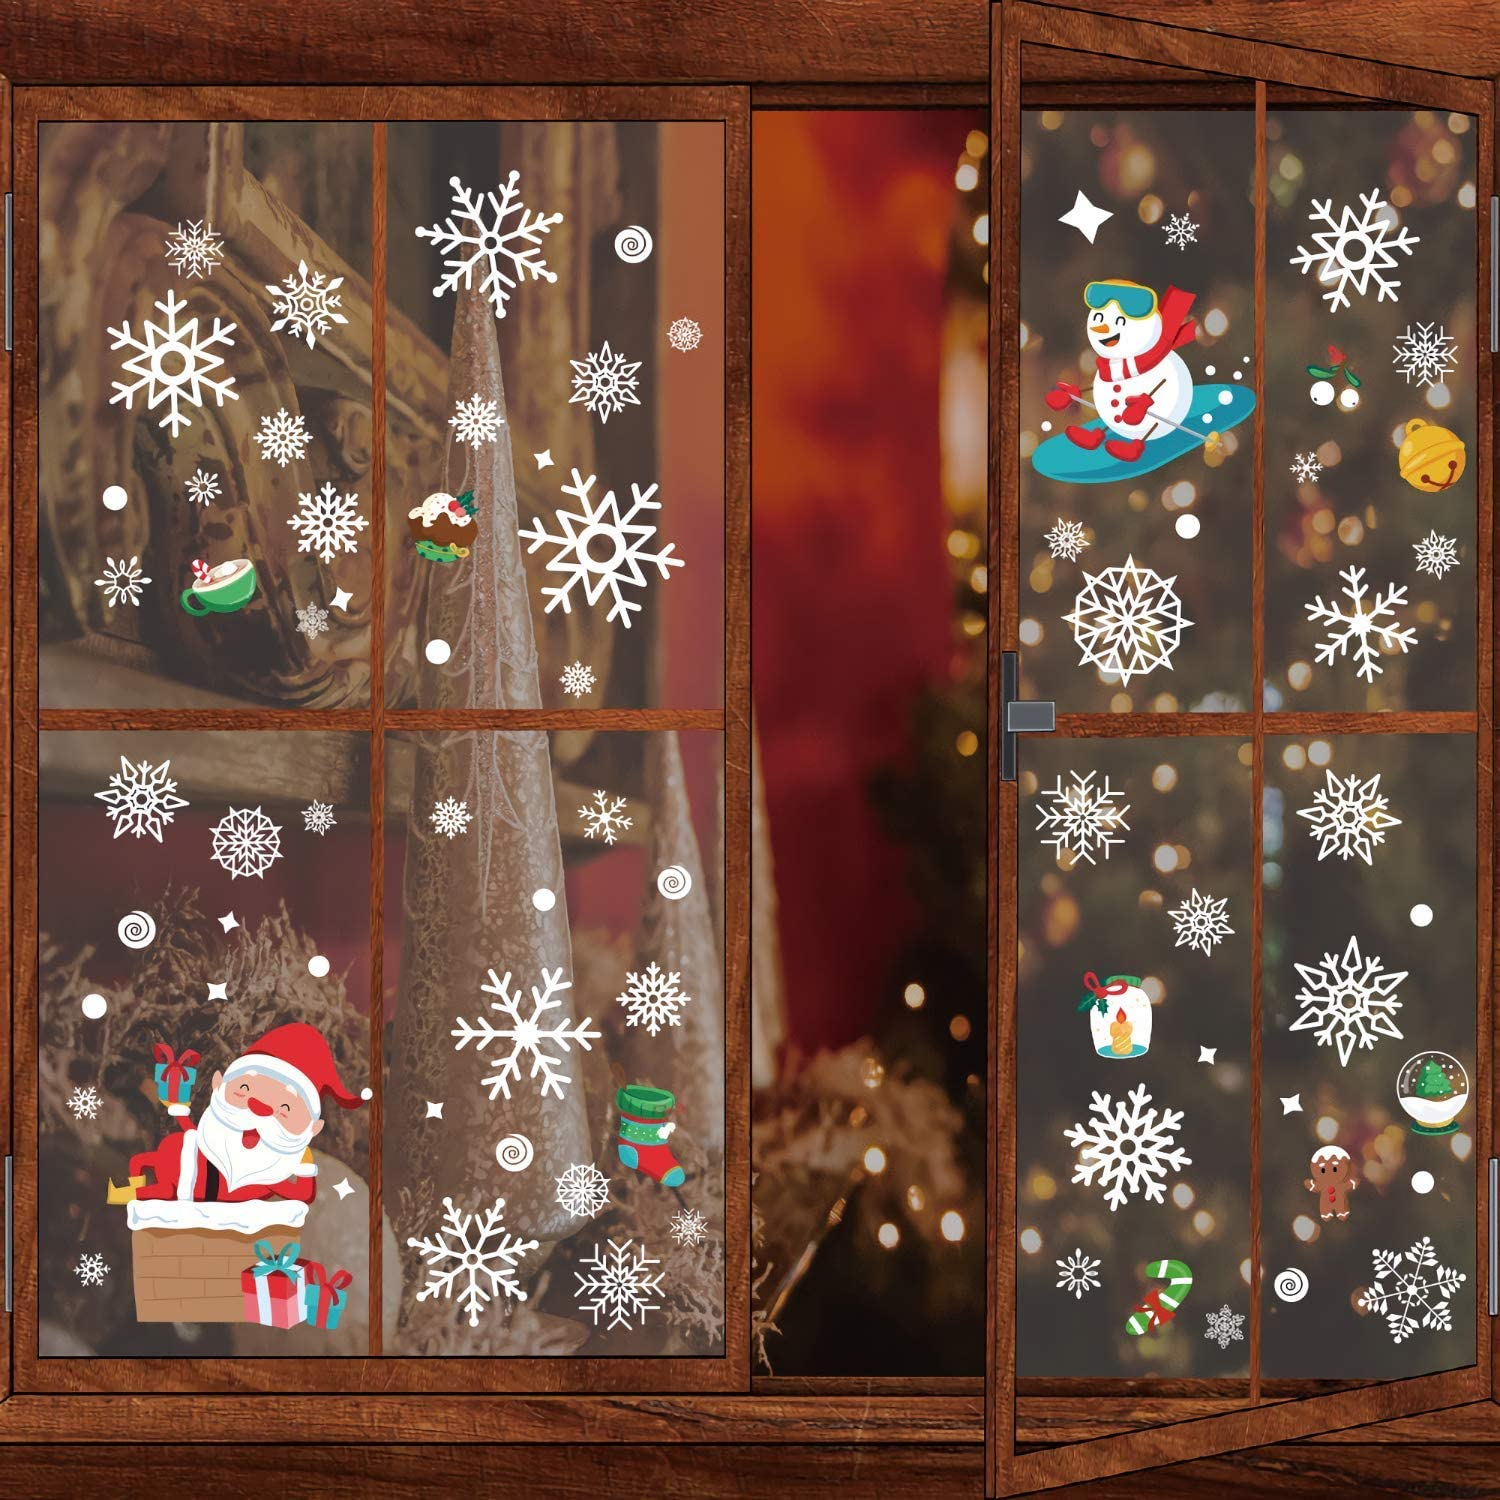 KOOXN Christmas Window Clings Holiday Decorations - 10 Sheets 166 pcs No-Glue Electrostatic Window Stickers Snow Elk Decorations for Home Office